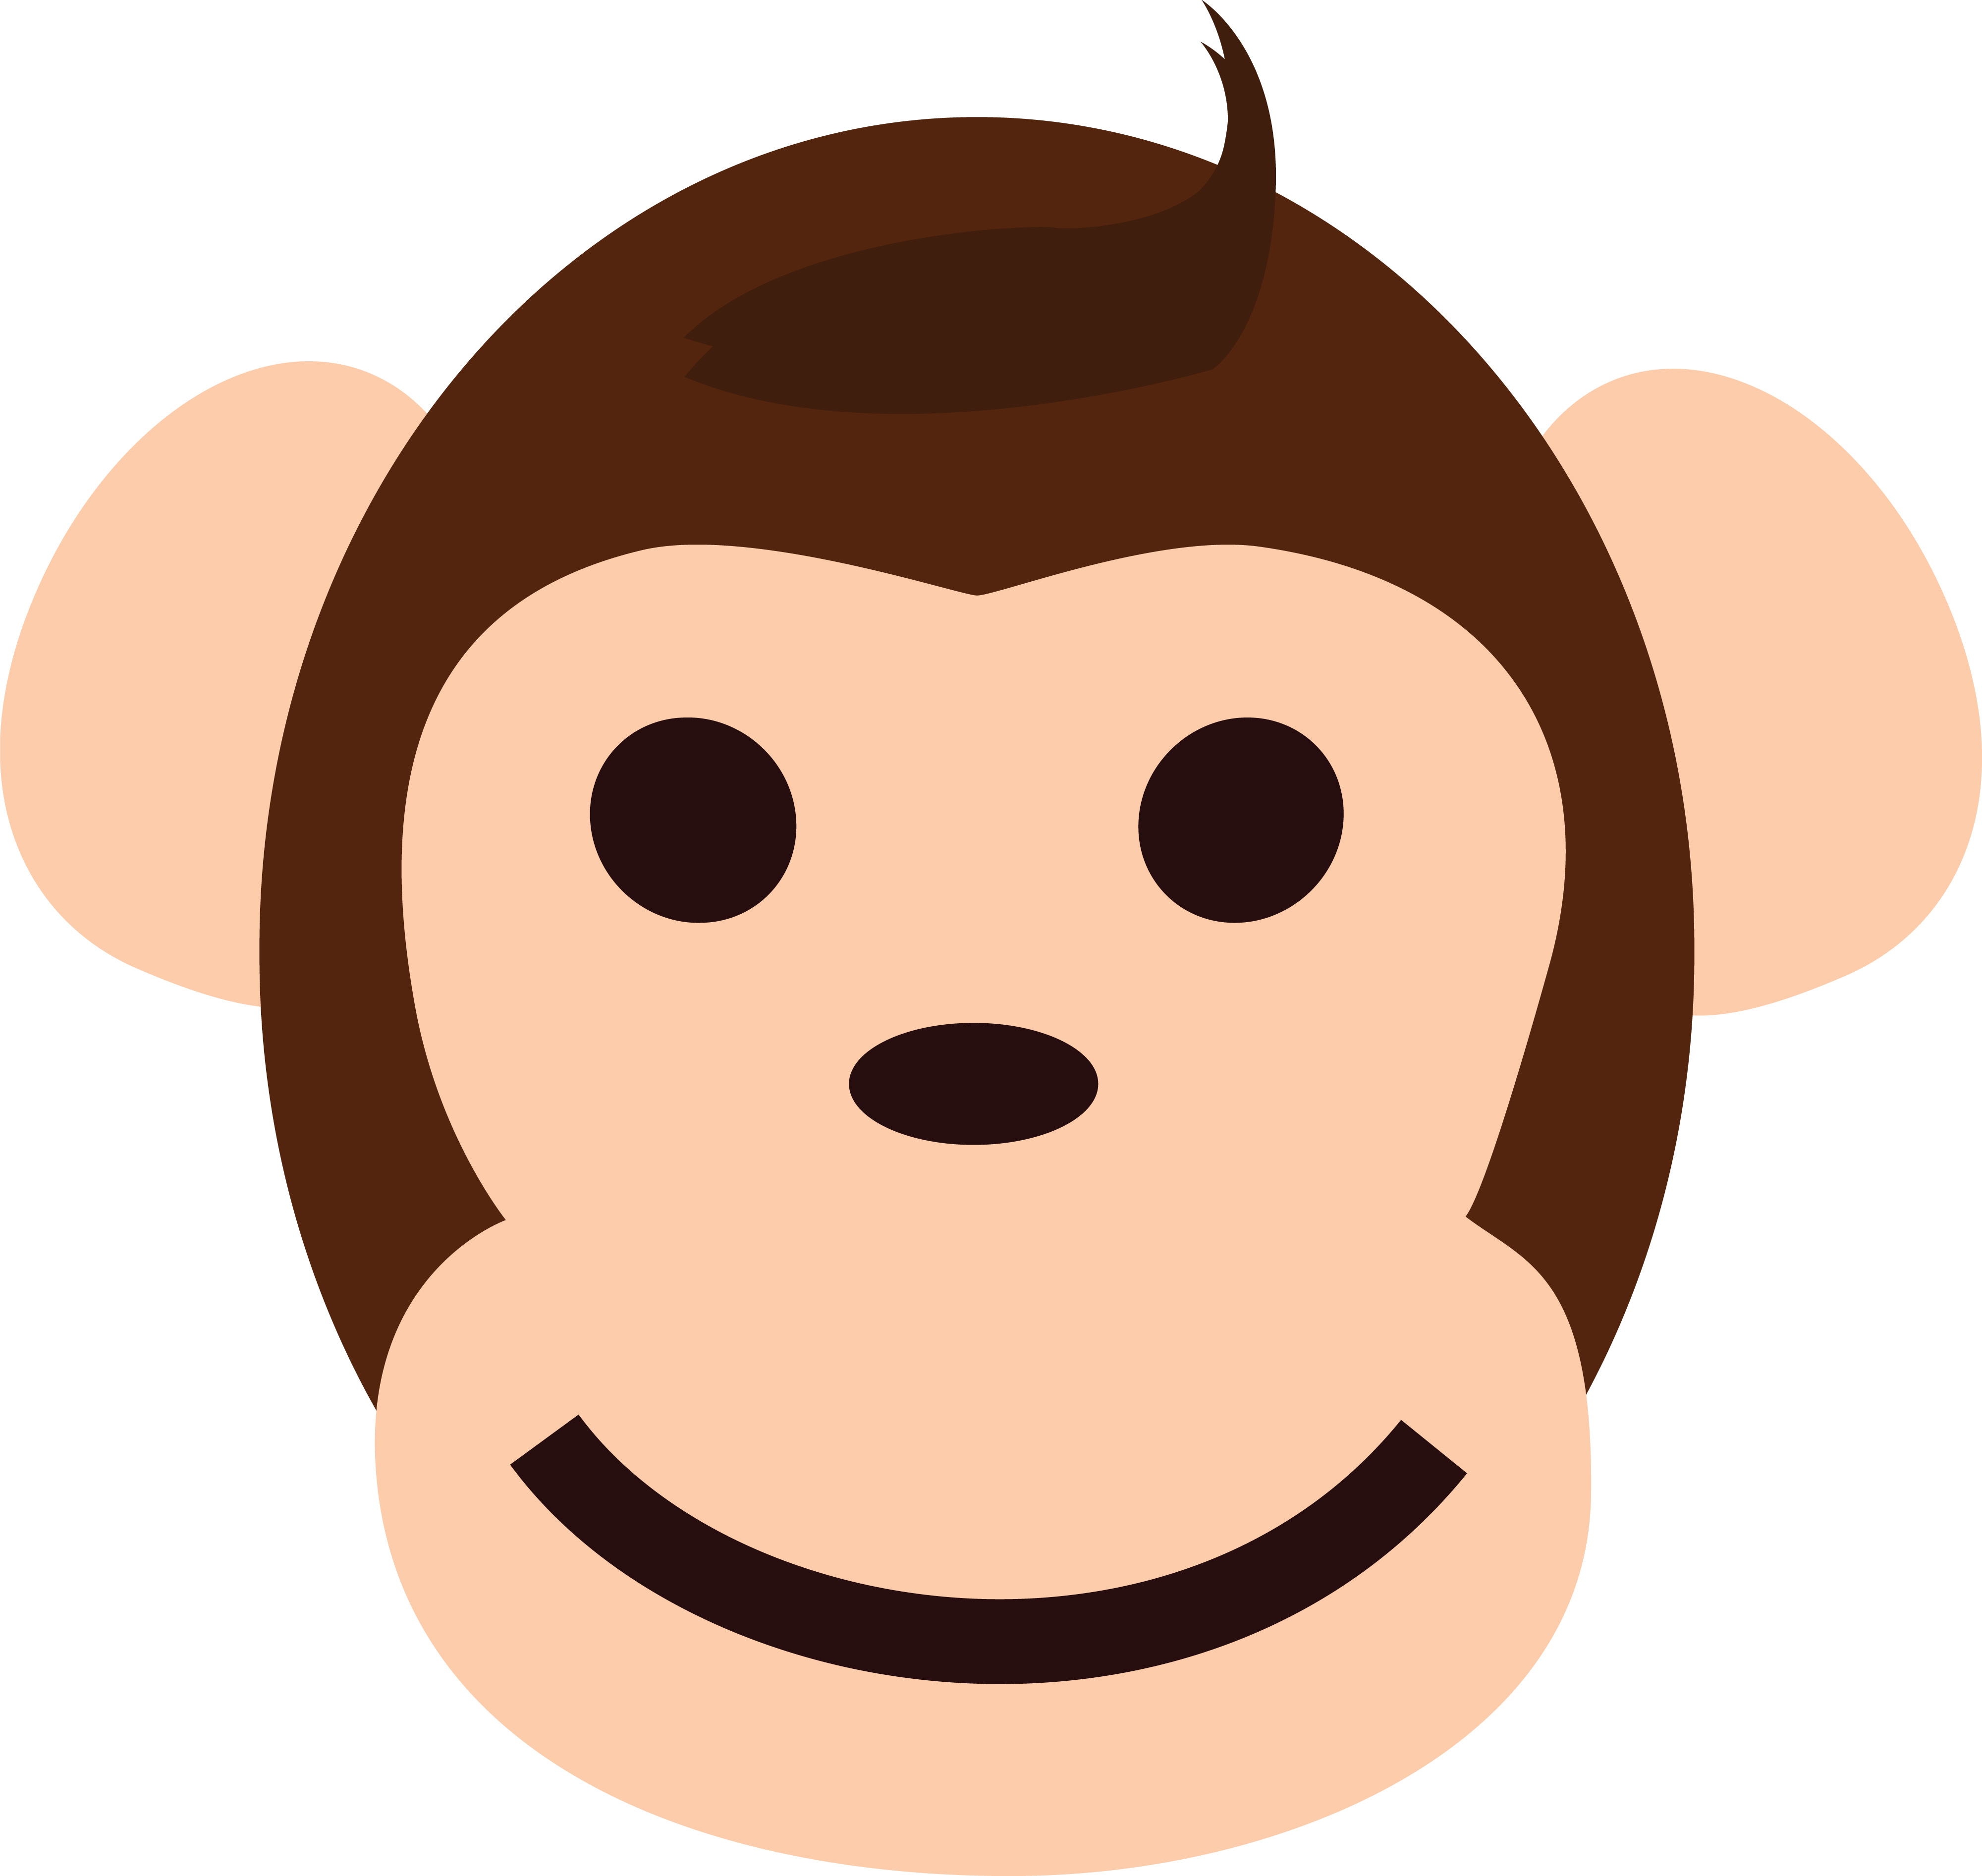 Ape clipart happy. Monkey face free download